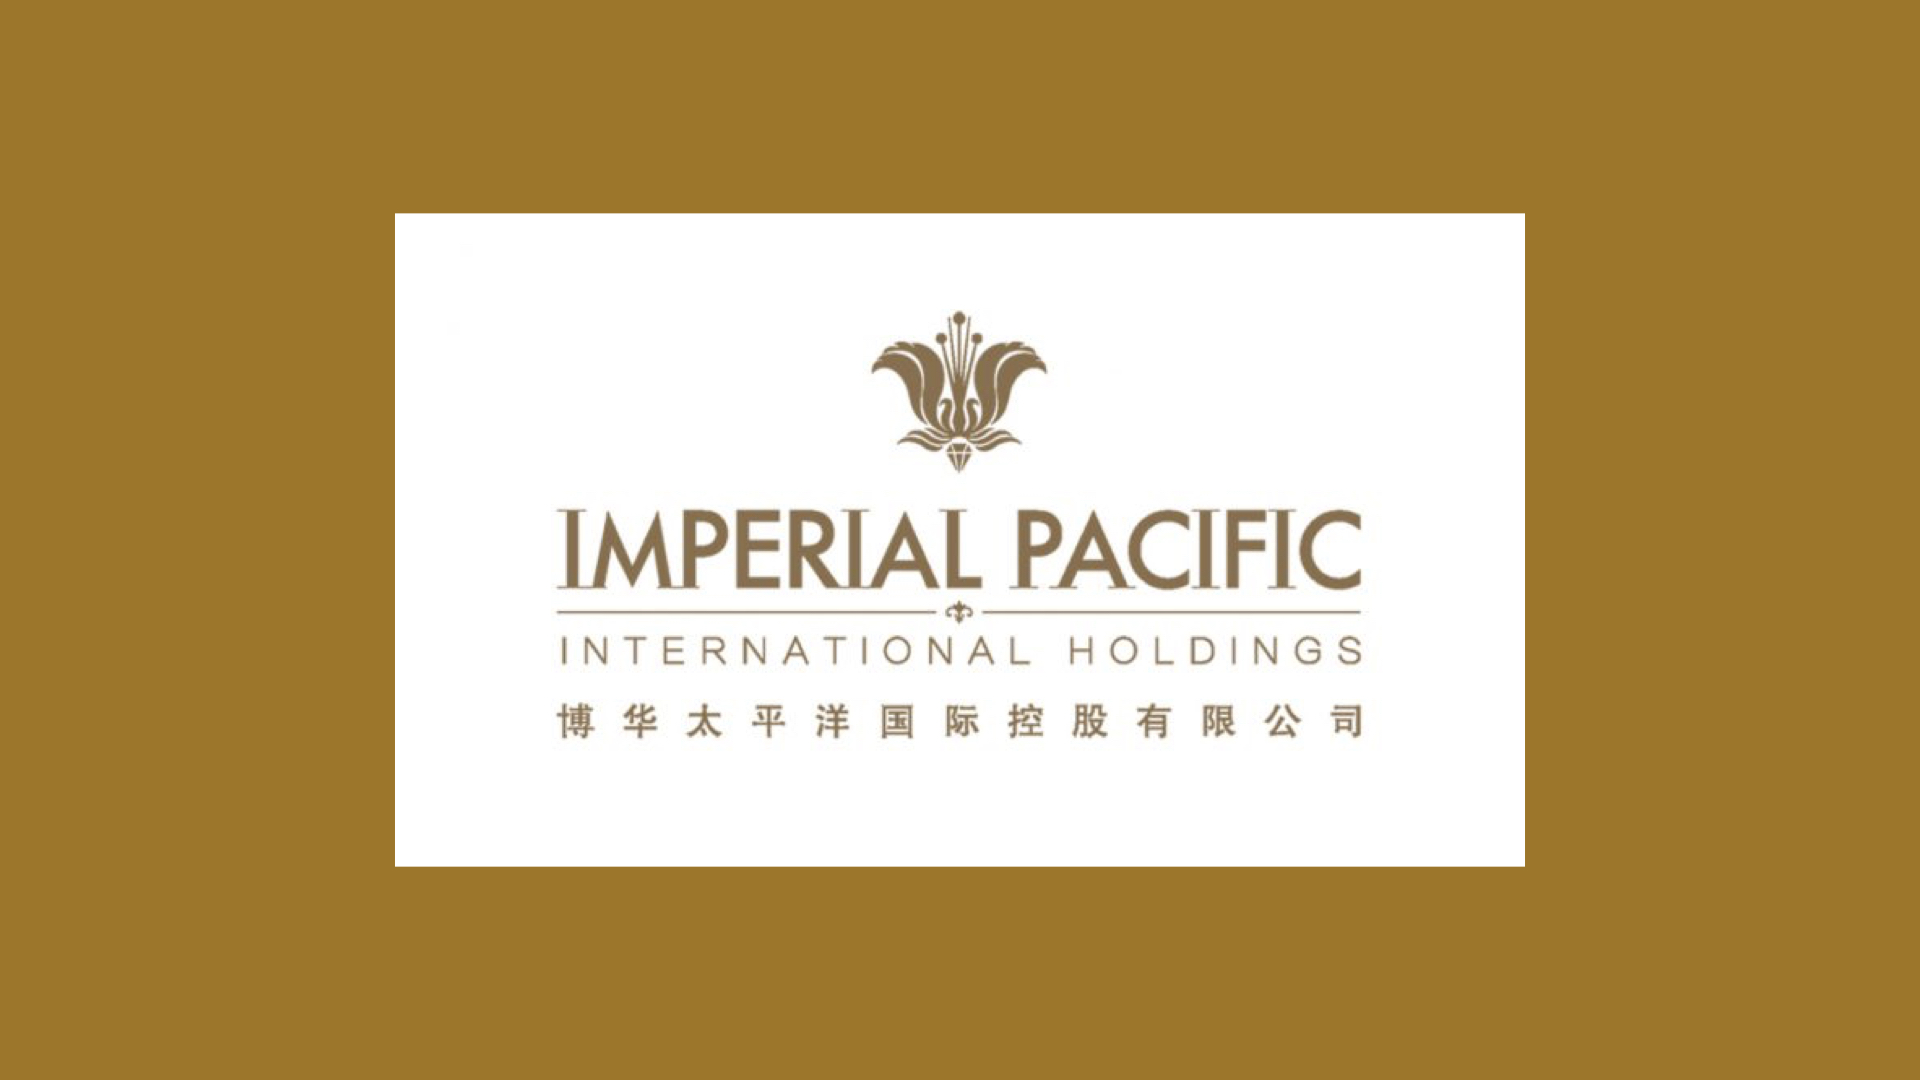 IPI asks to pay its overdue casino license fee in installments